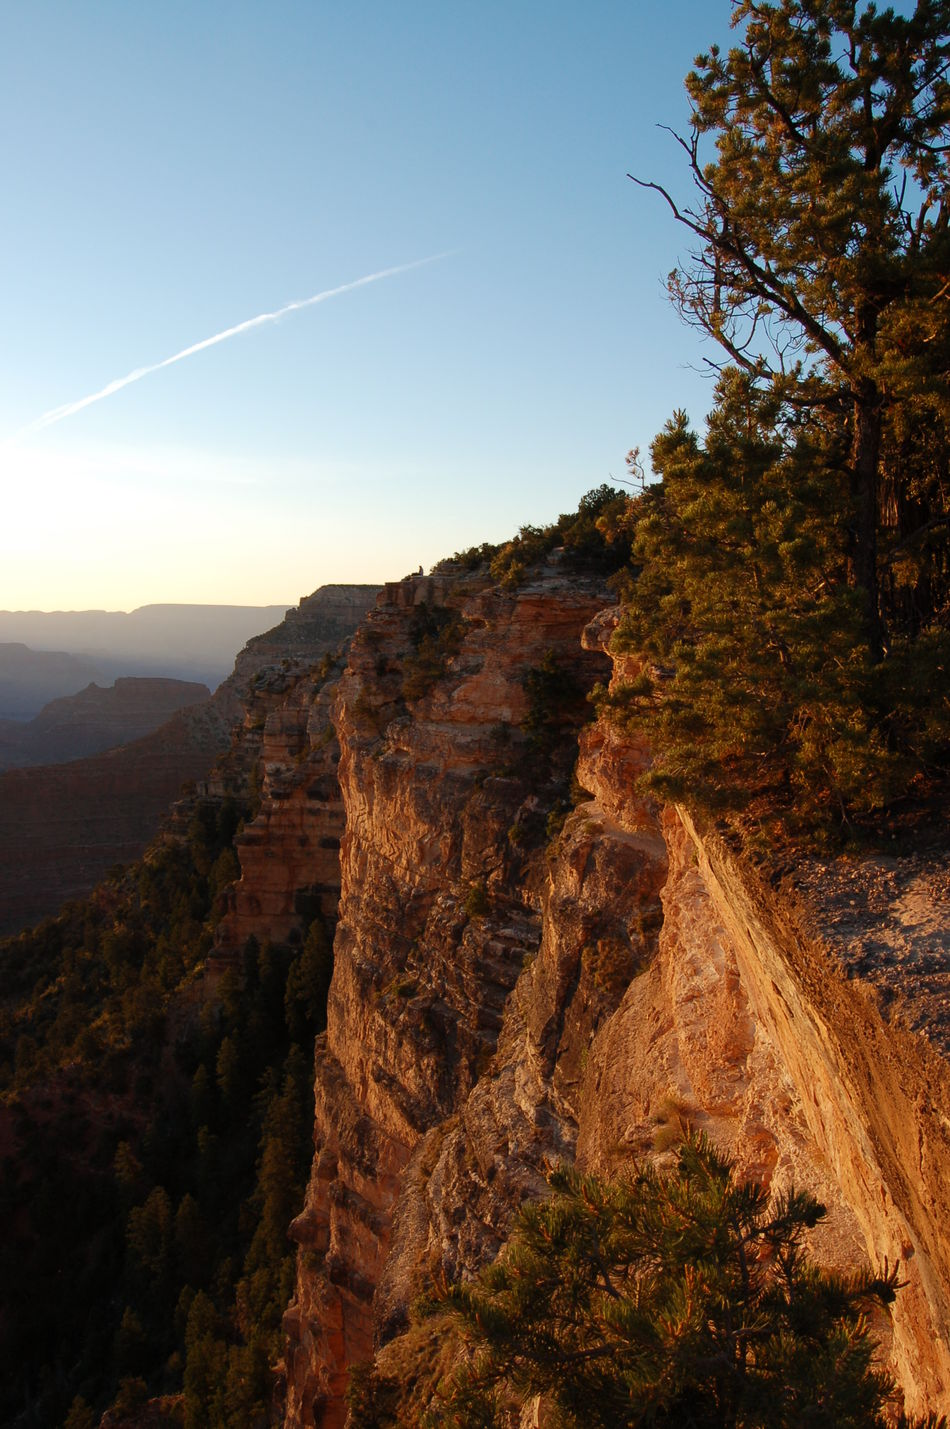 Nature Landscape Social Issues Outdoors Sky Sunset No People Tree Beauty In Nature Day Astronomy Indians  Mountains Canyon USA Vacation Summer Outdoor Nofliter Underexposed